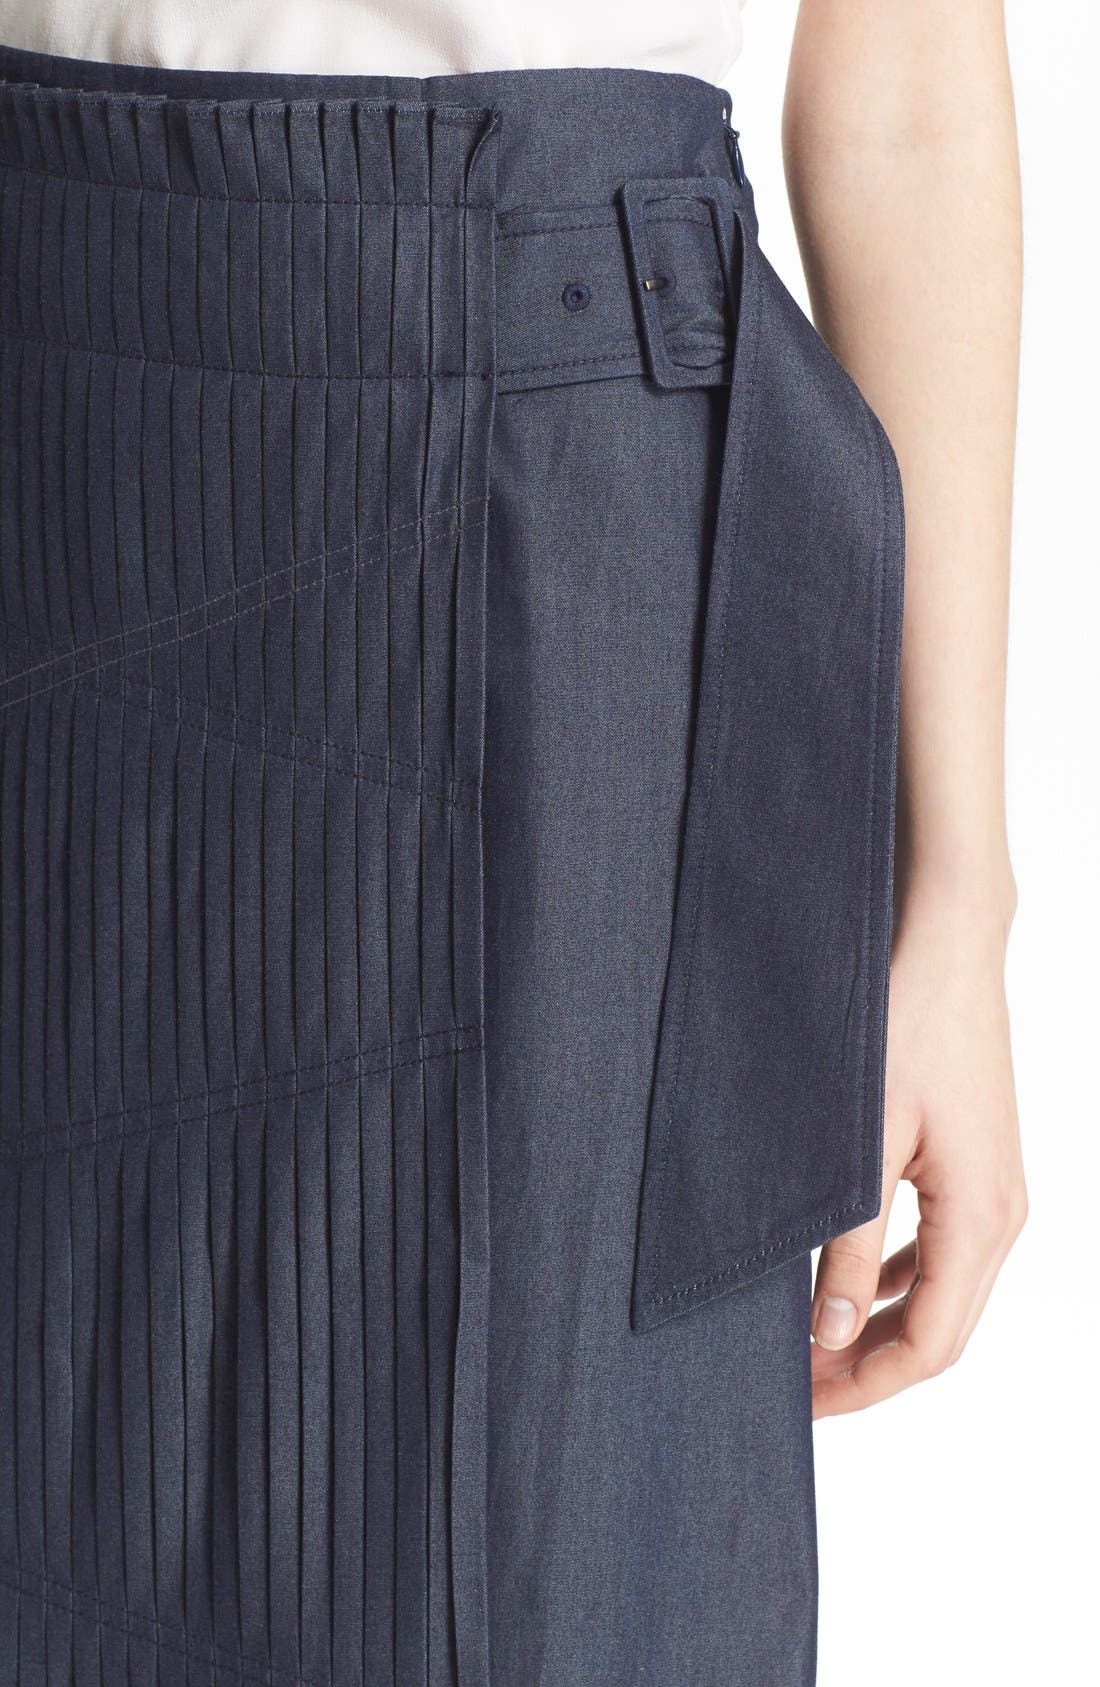 'Manuela' Pleated Cotton Midi Skirt,                             Alternate thumbnail 4, color,                             Steel Denim